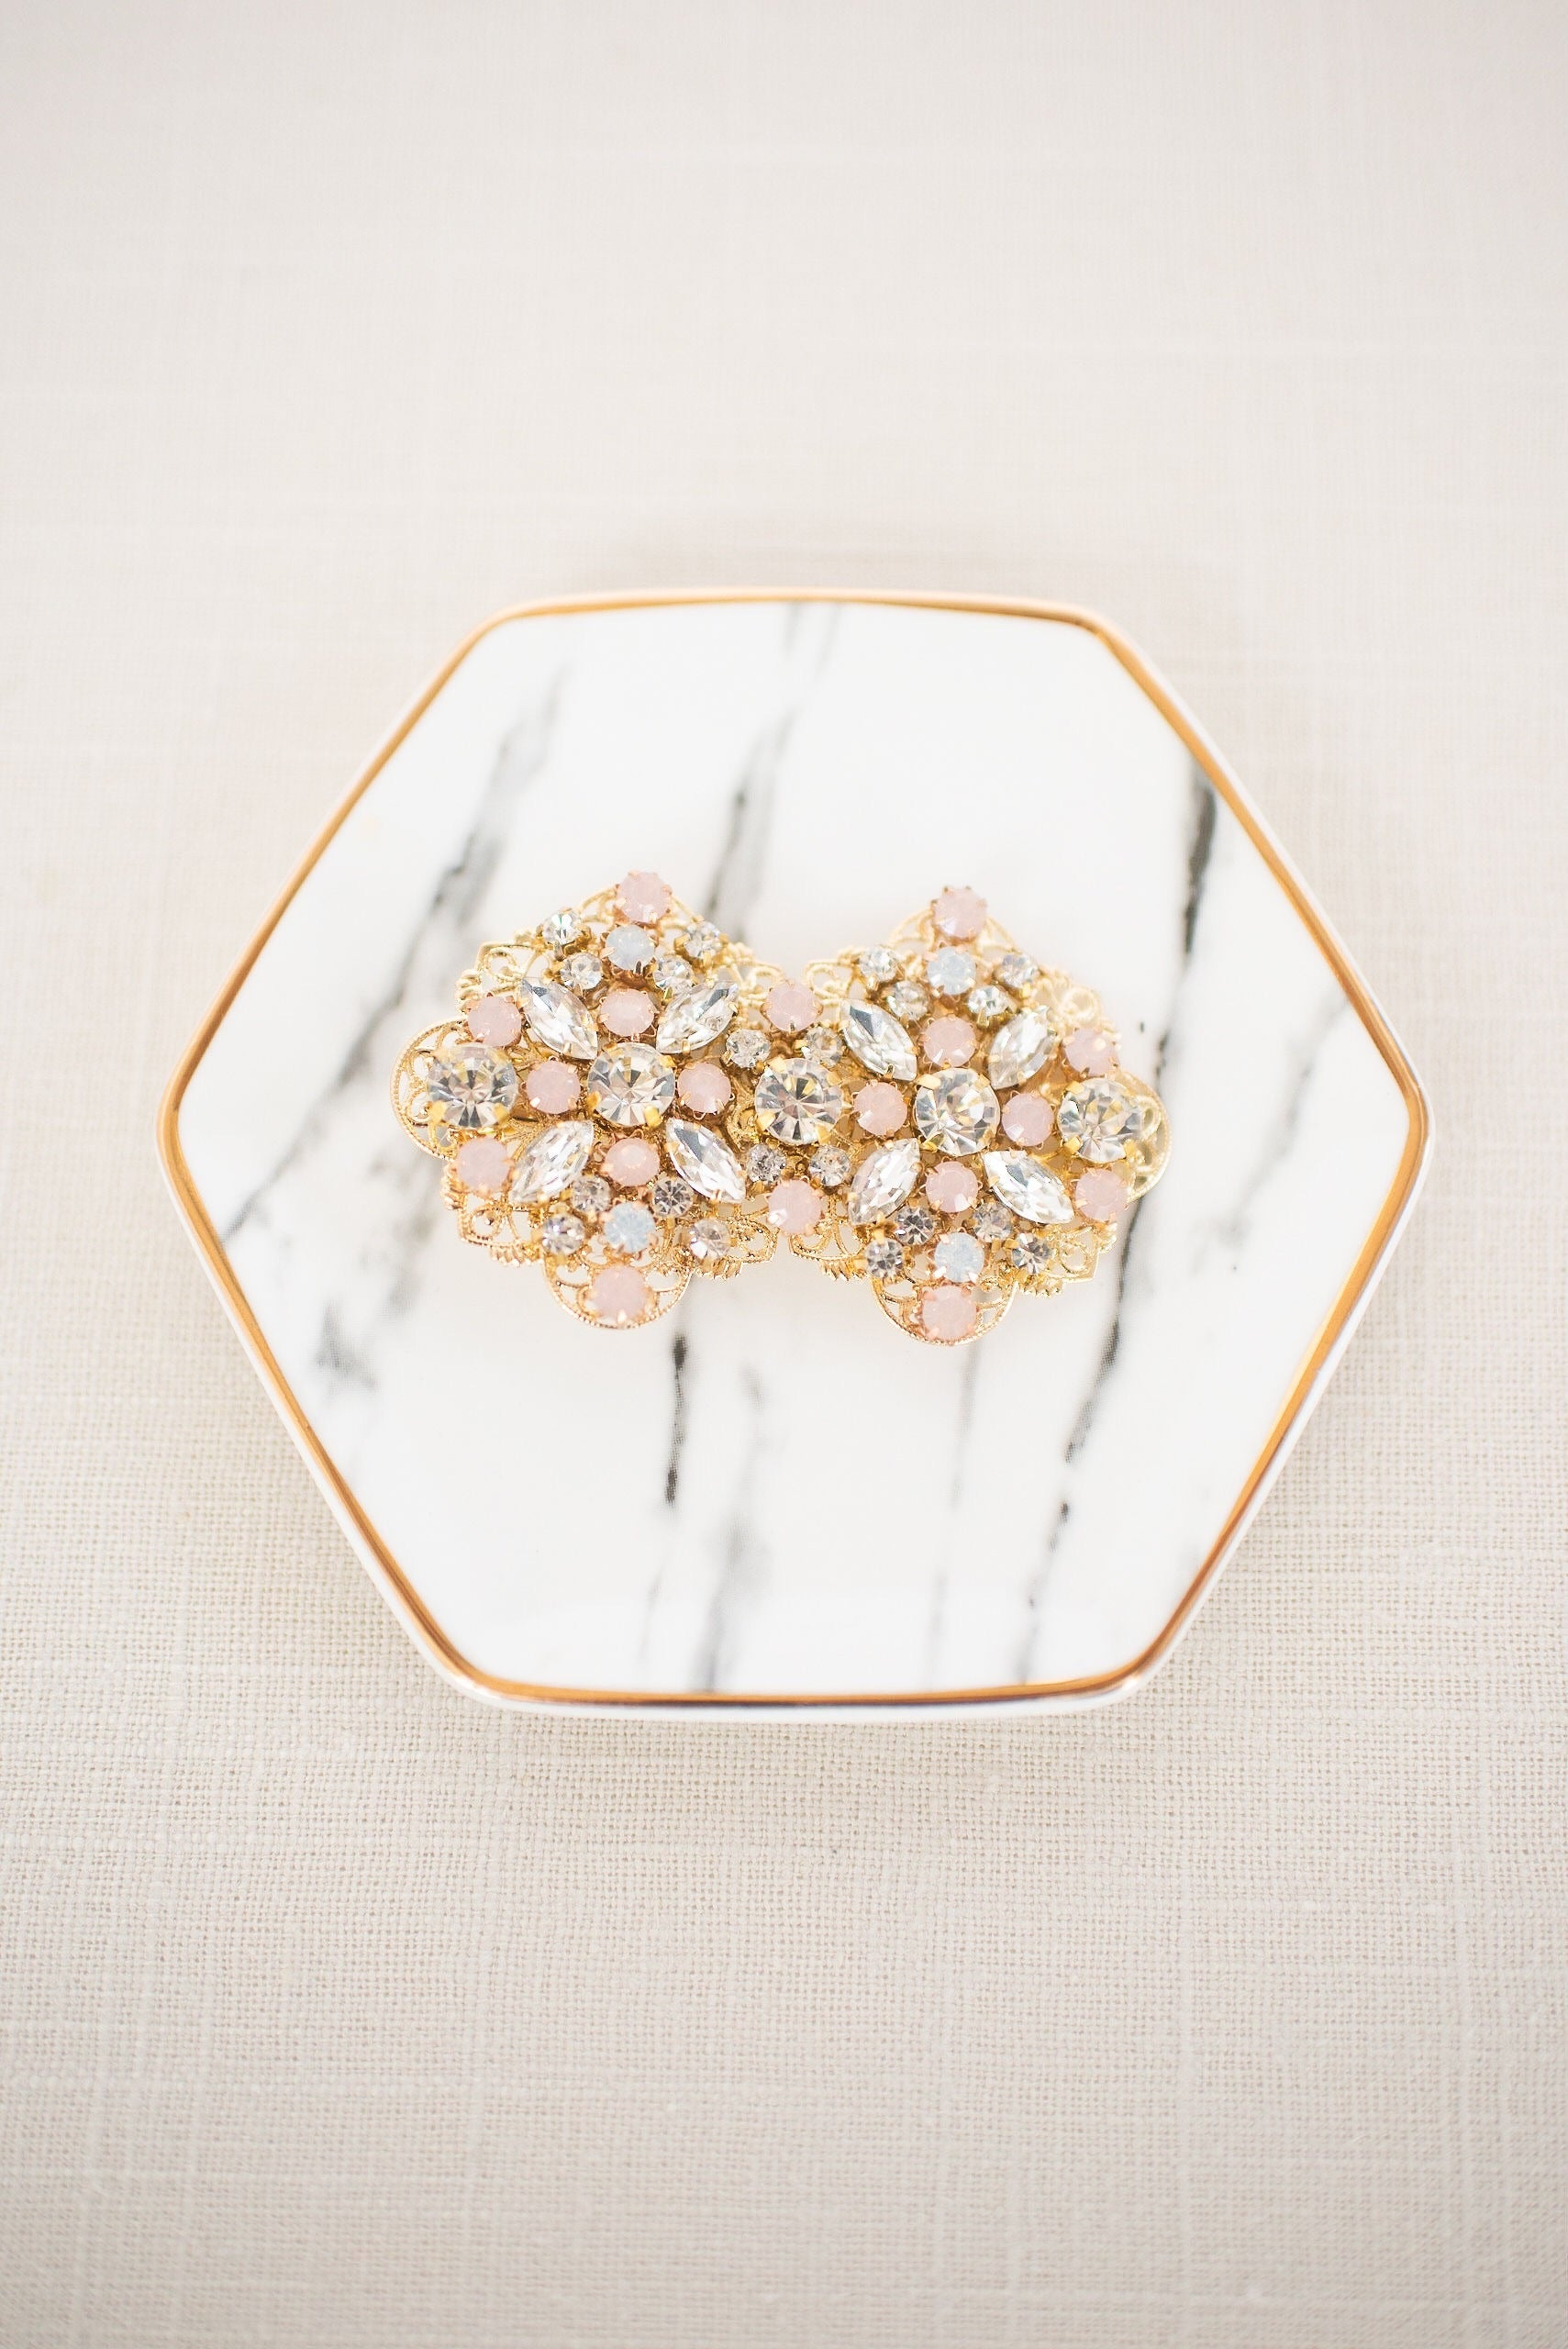 Rhinestone blush gold veil hair clip - style 4004 - Ready to ship - Tessa Kim